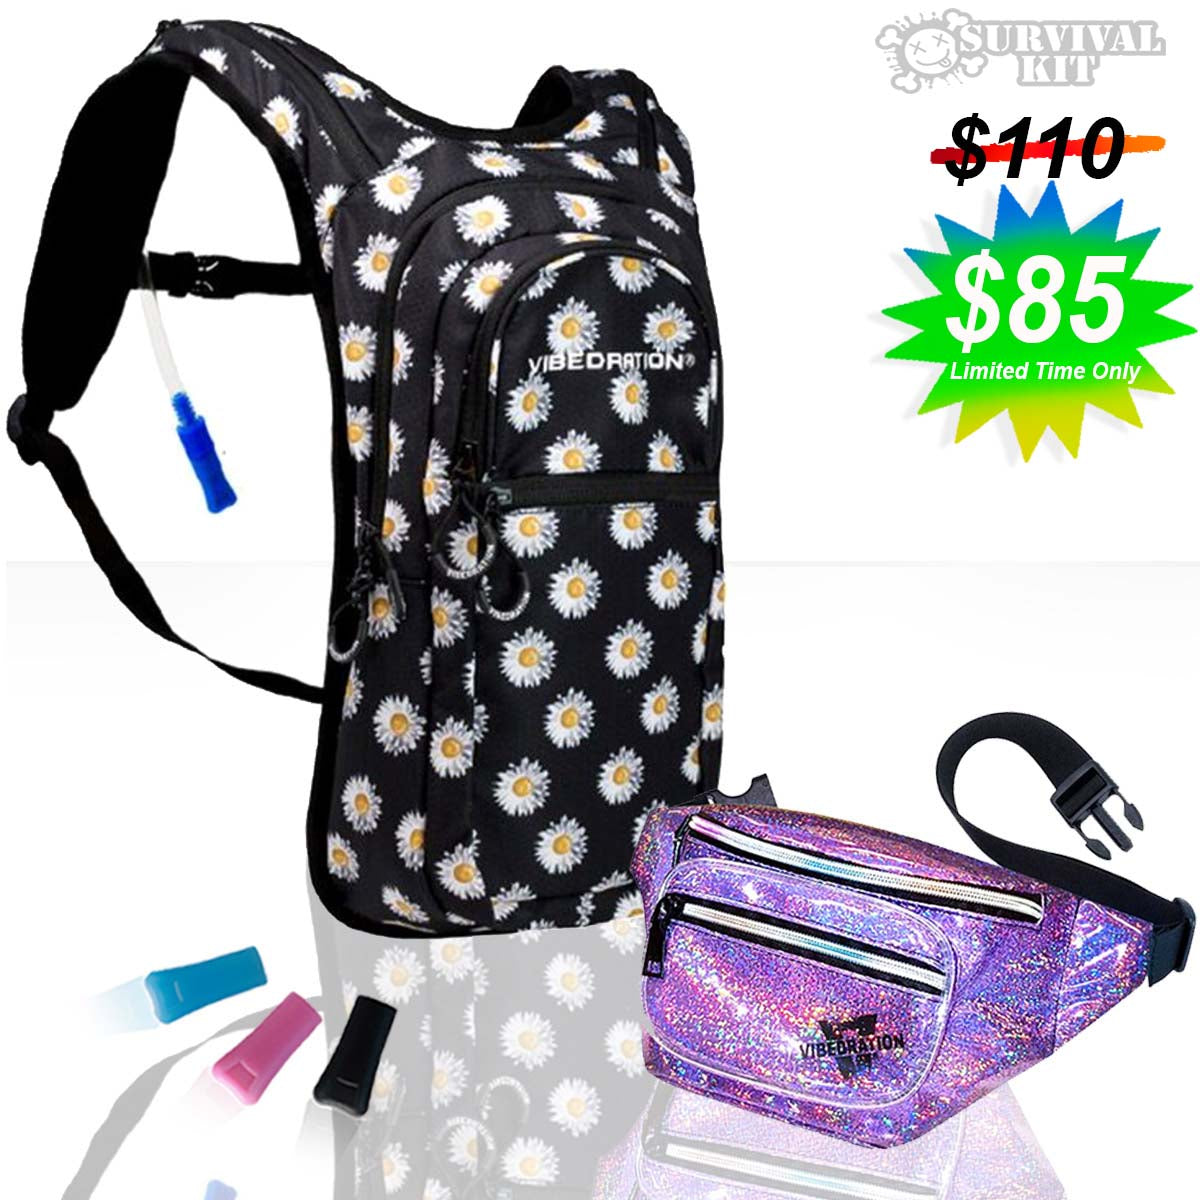 Flower printed 2 Liter hydration pack and purple holographic sling pack with sparkles